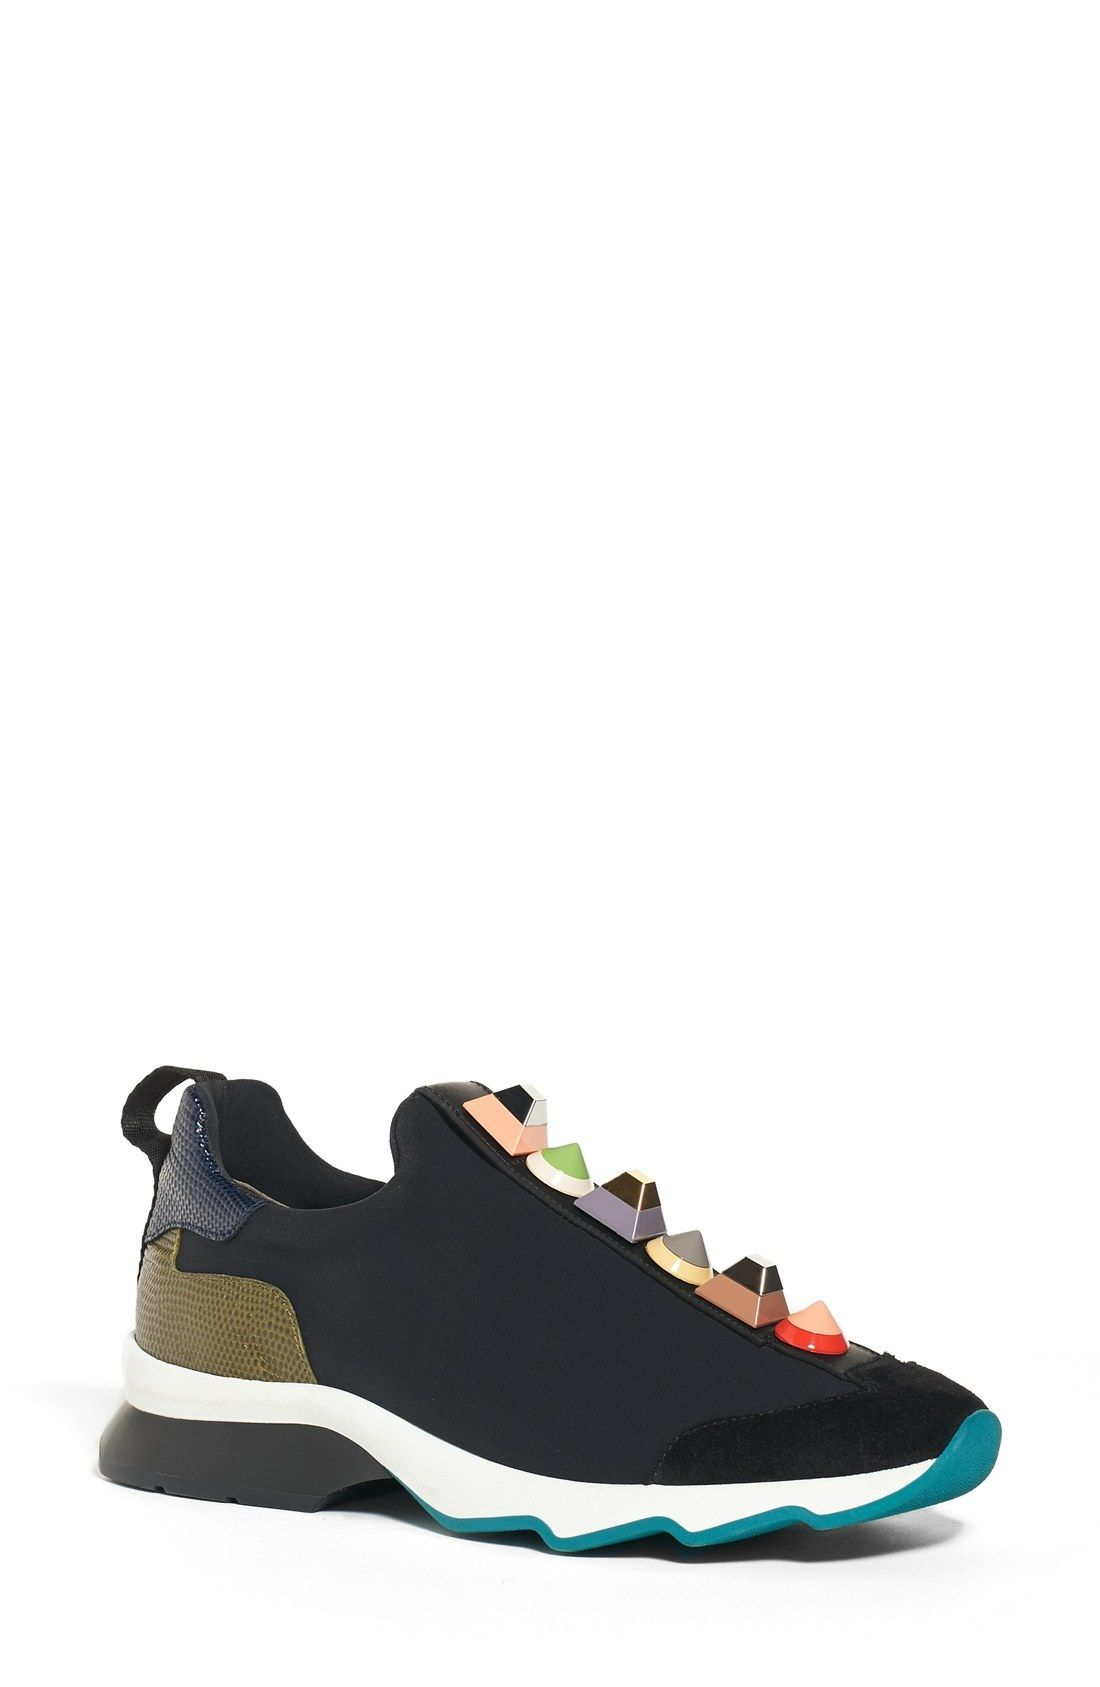 5a158c3a300d Fendi Rainbow Studded Sneaker (Women) available at  Nordstrom